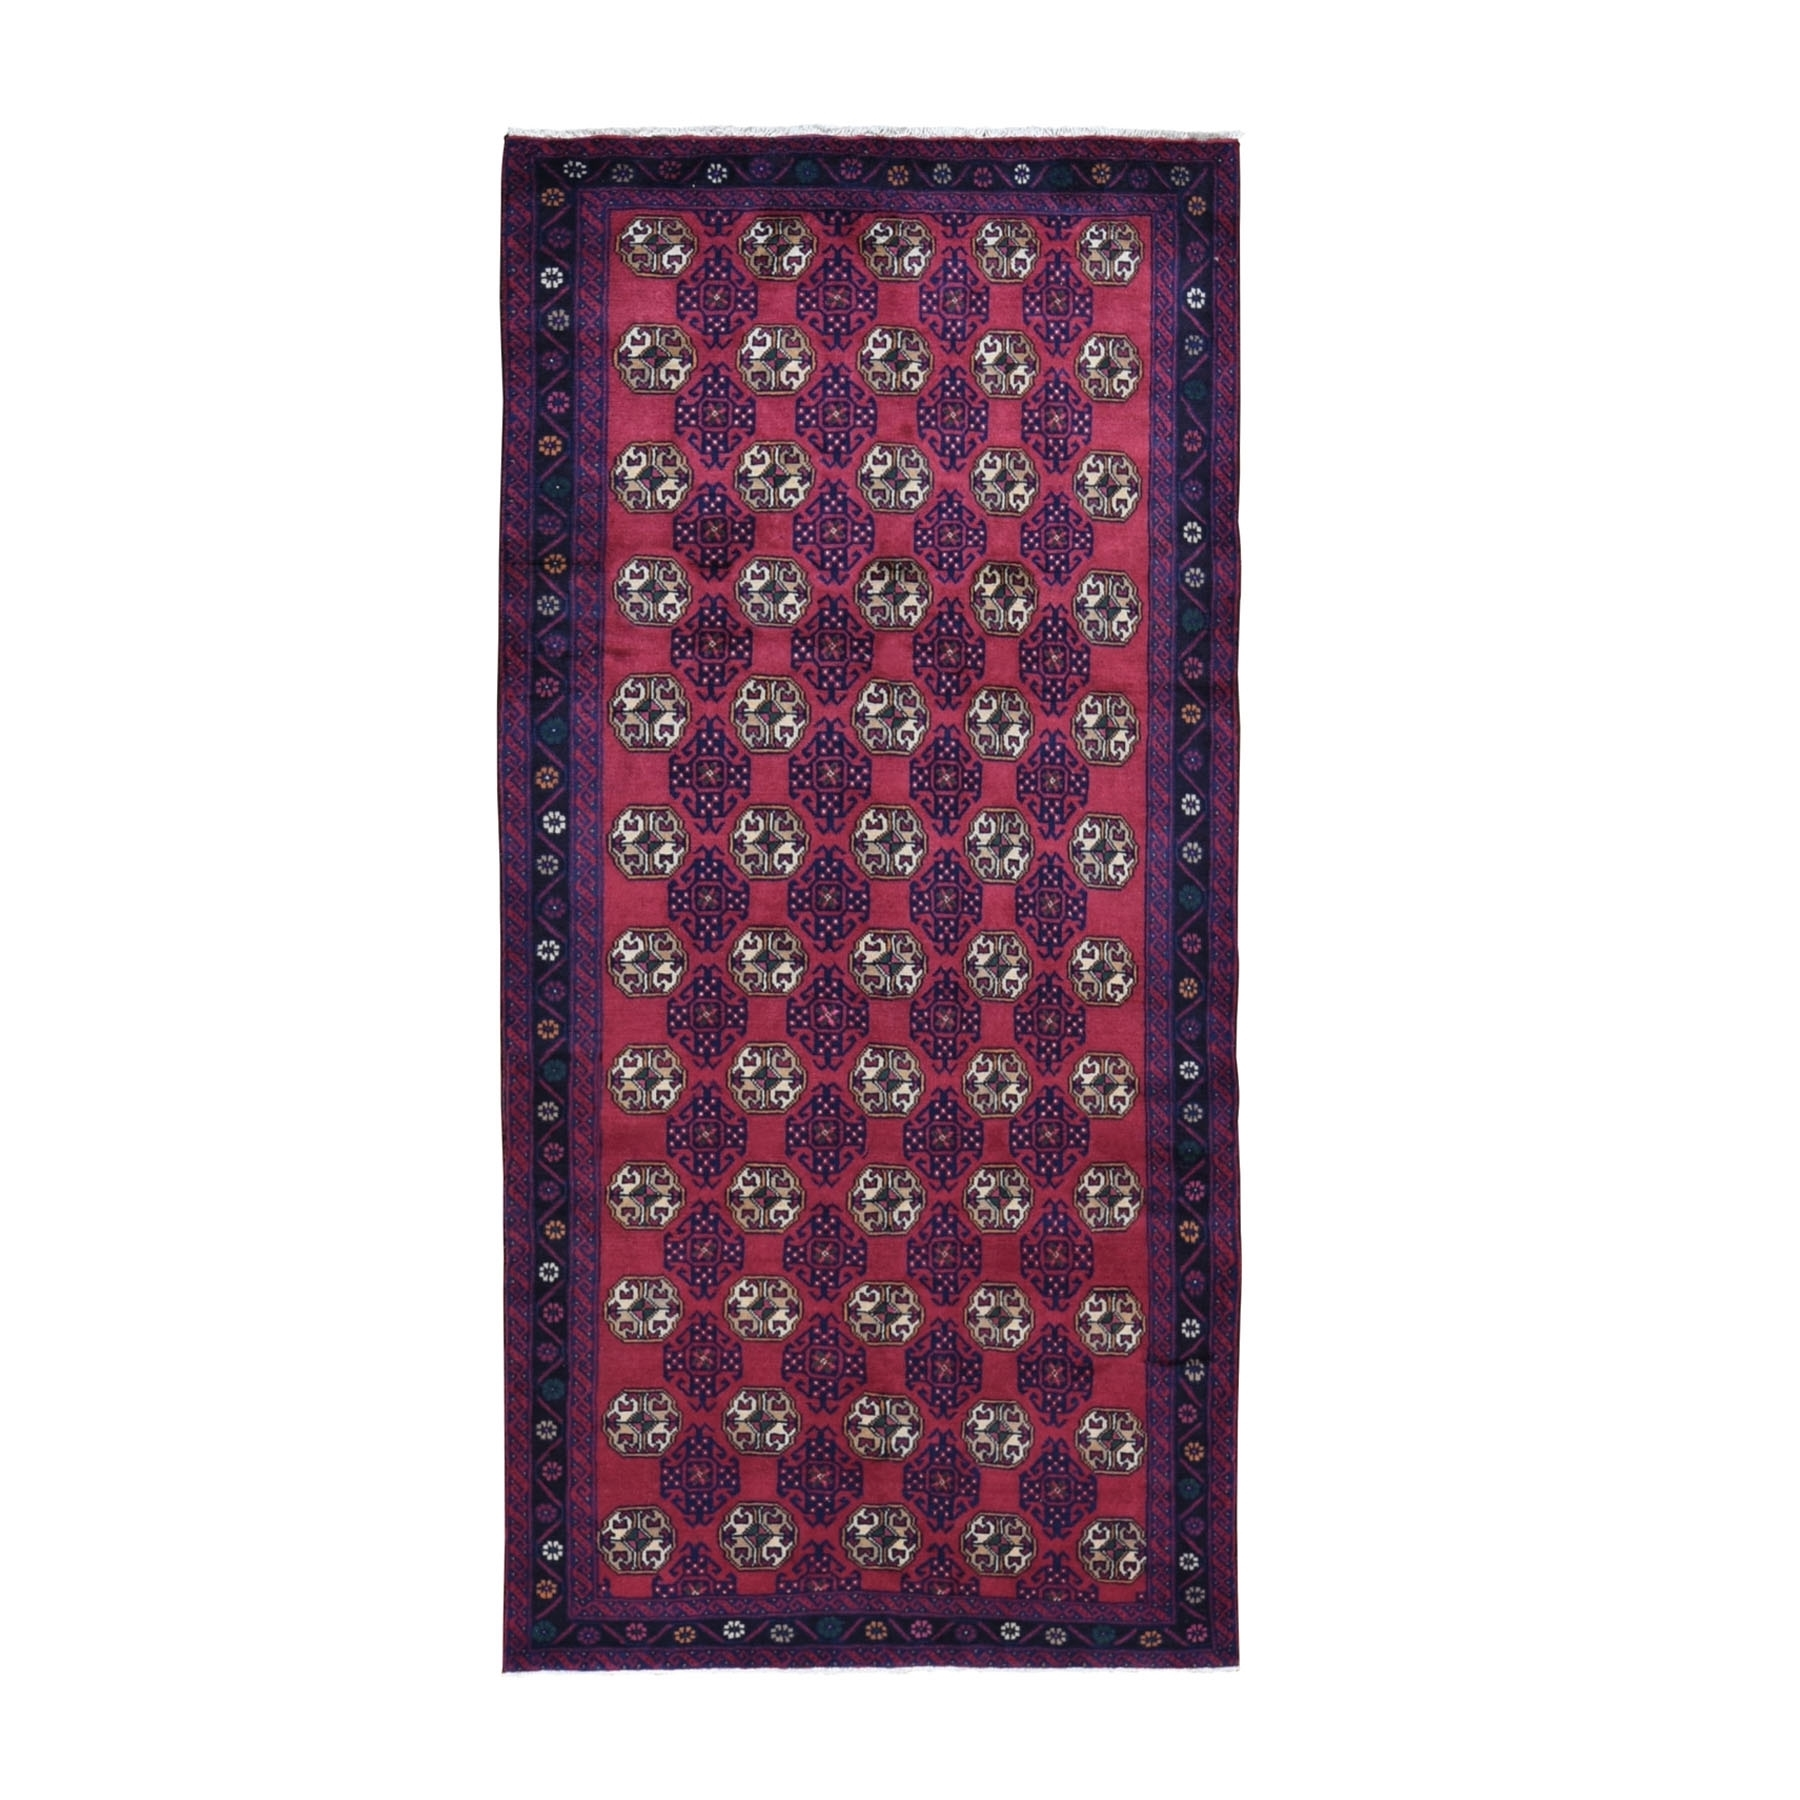 "4'2""x8'10"" Red Vintage Persian Baluch Wide Runner Tribal Design Pure Wool Hand Woven Oriental Rug"